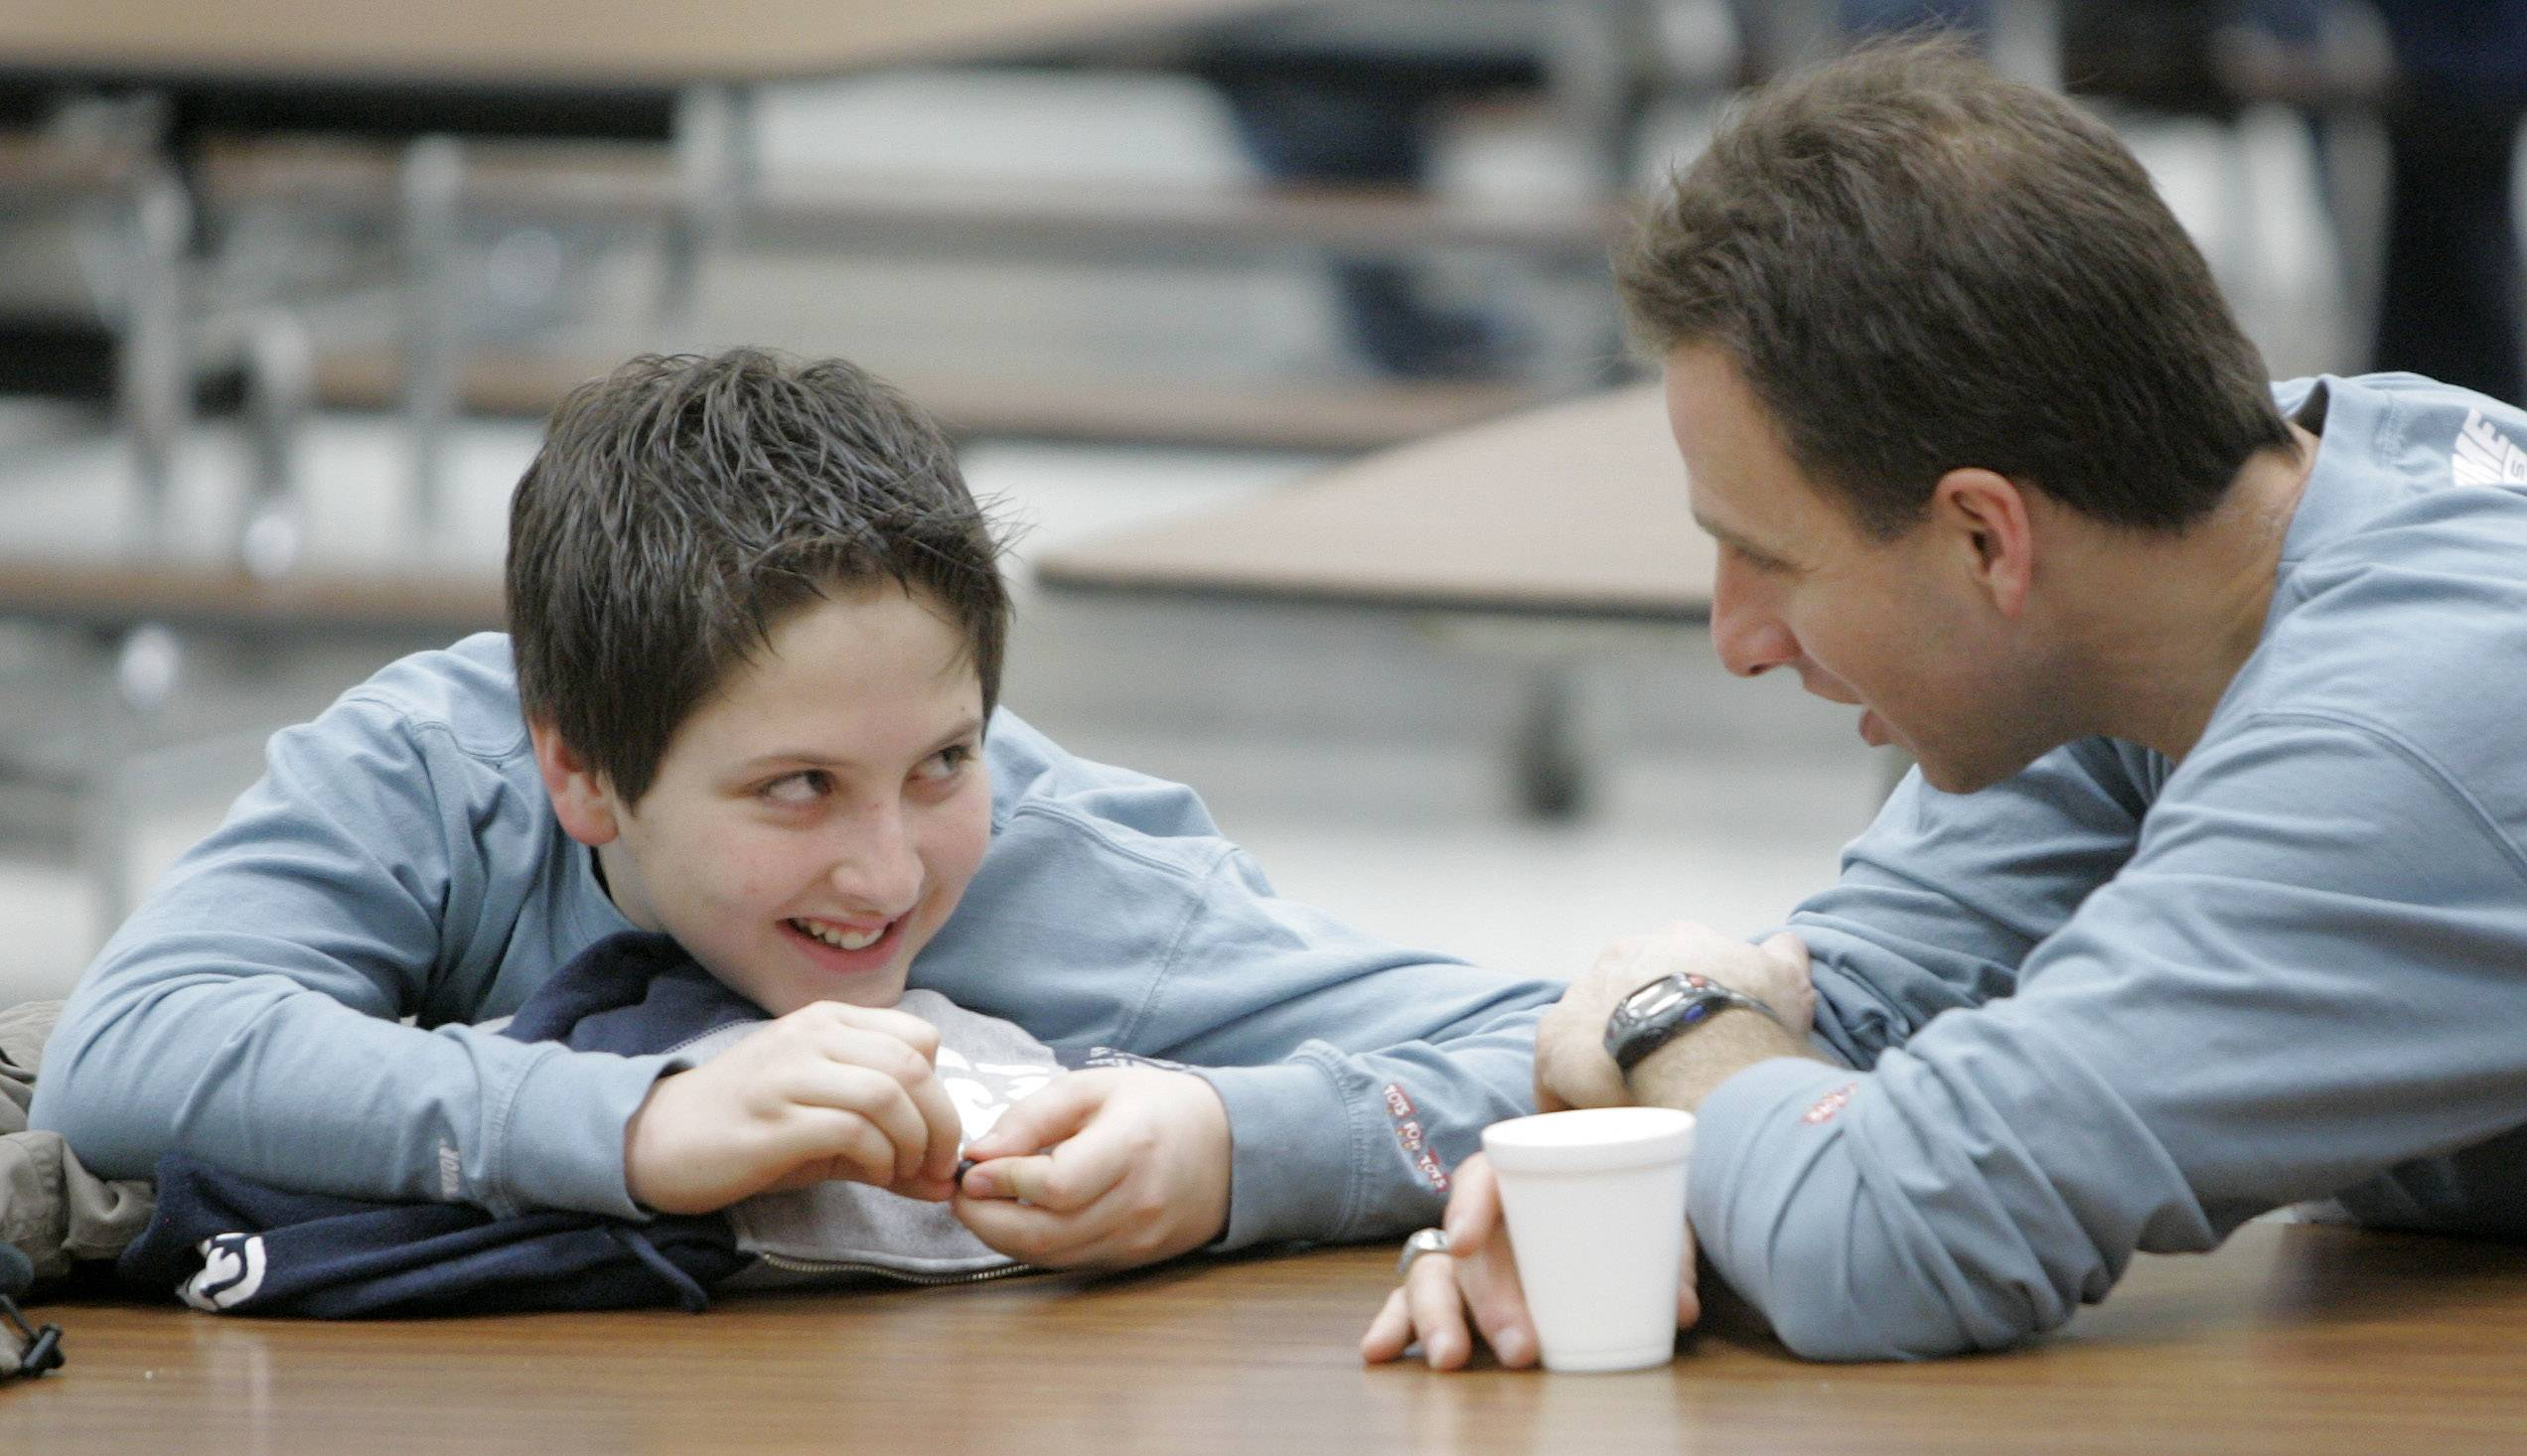 Naperville North High School health teacher and diving coach Steven Mazzarella, right, shares a moment at a dad's breakfast with his son, Matthew, then 12, at Madison Junior High School in Naperville.